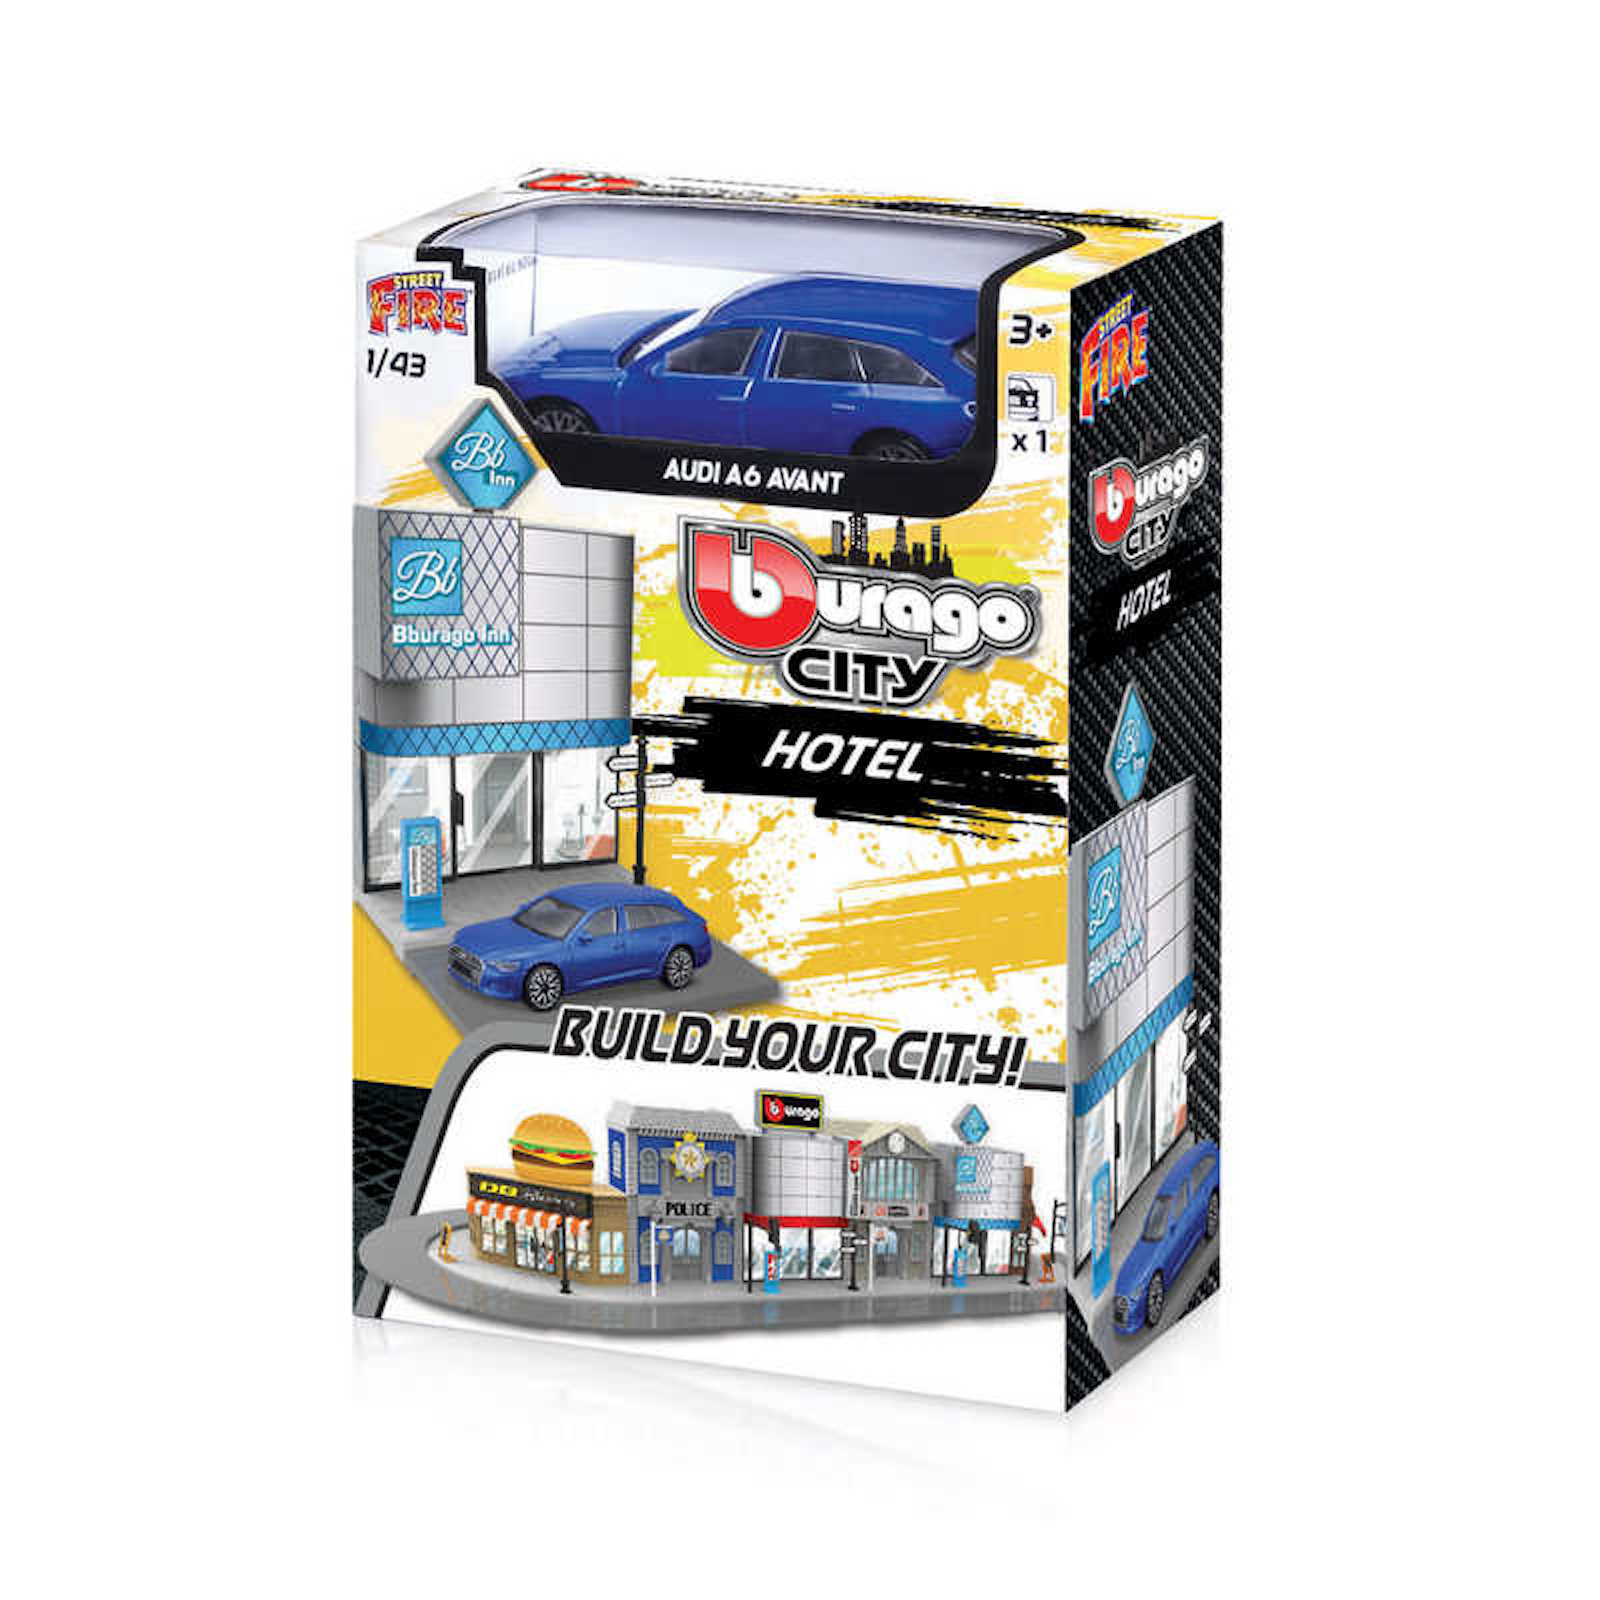 Build your City Hotel Audi A6 Avant Bburago Street Fire 1:43 Scale Model Toy Childs Kids Dads Birthday Present Gift